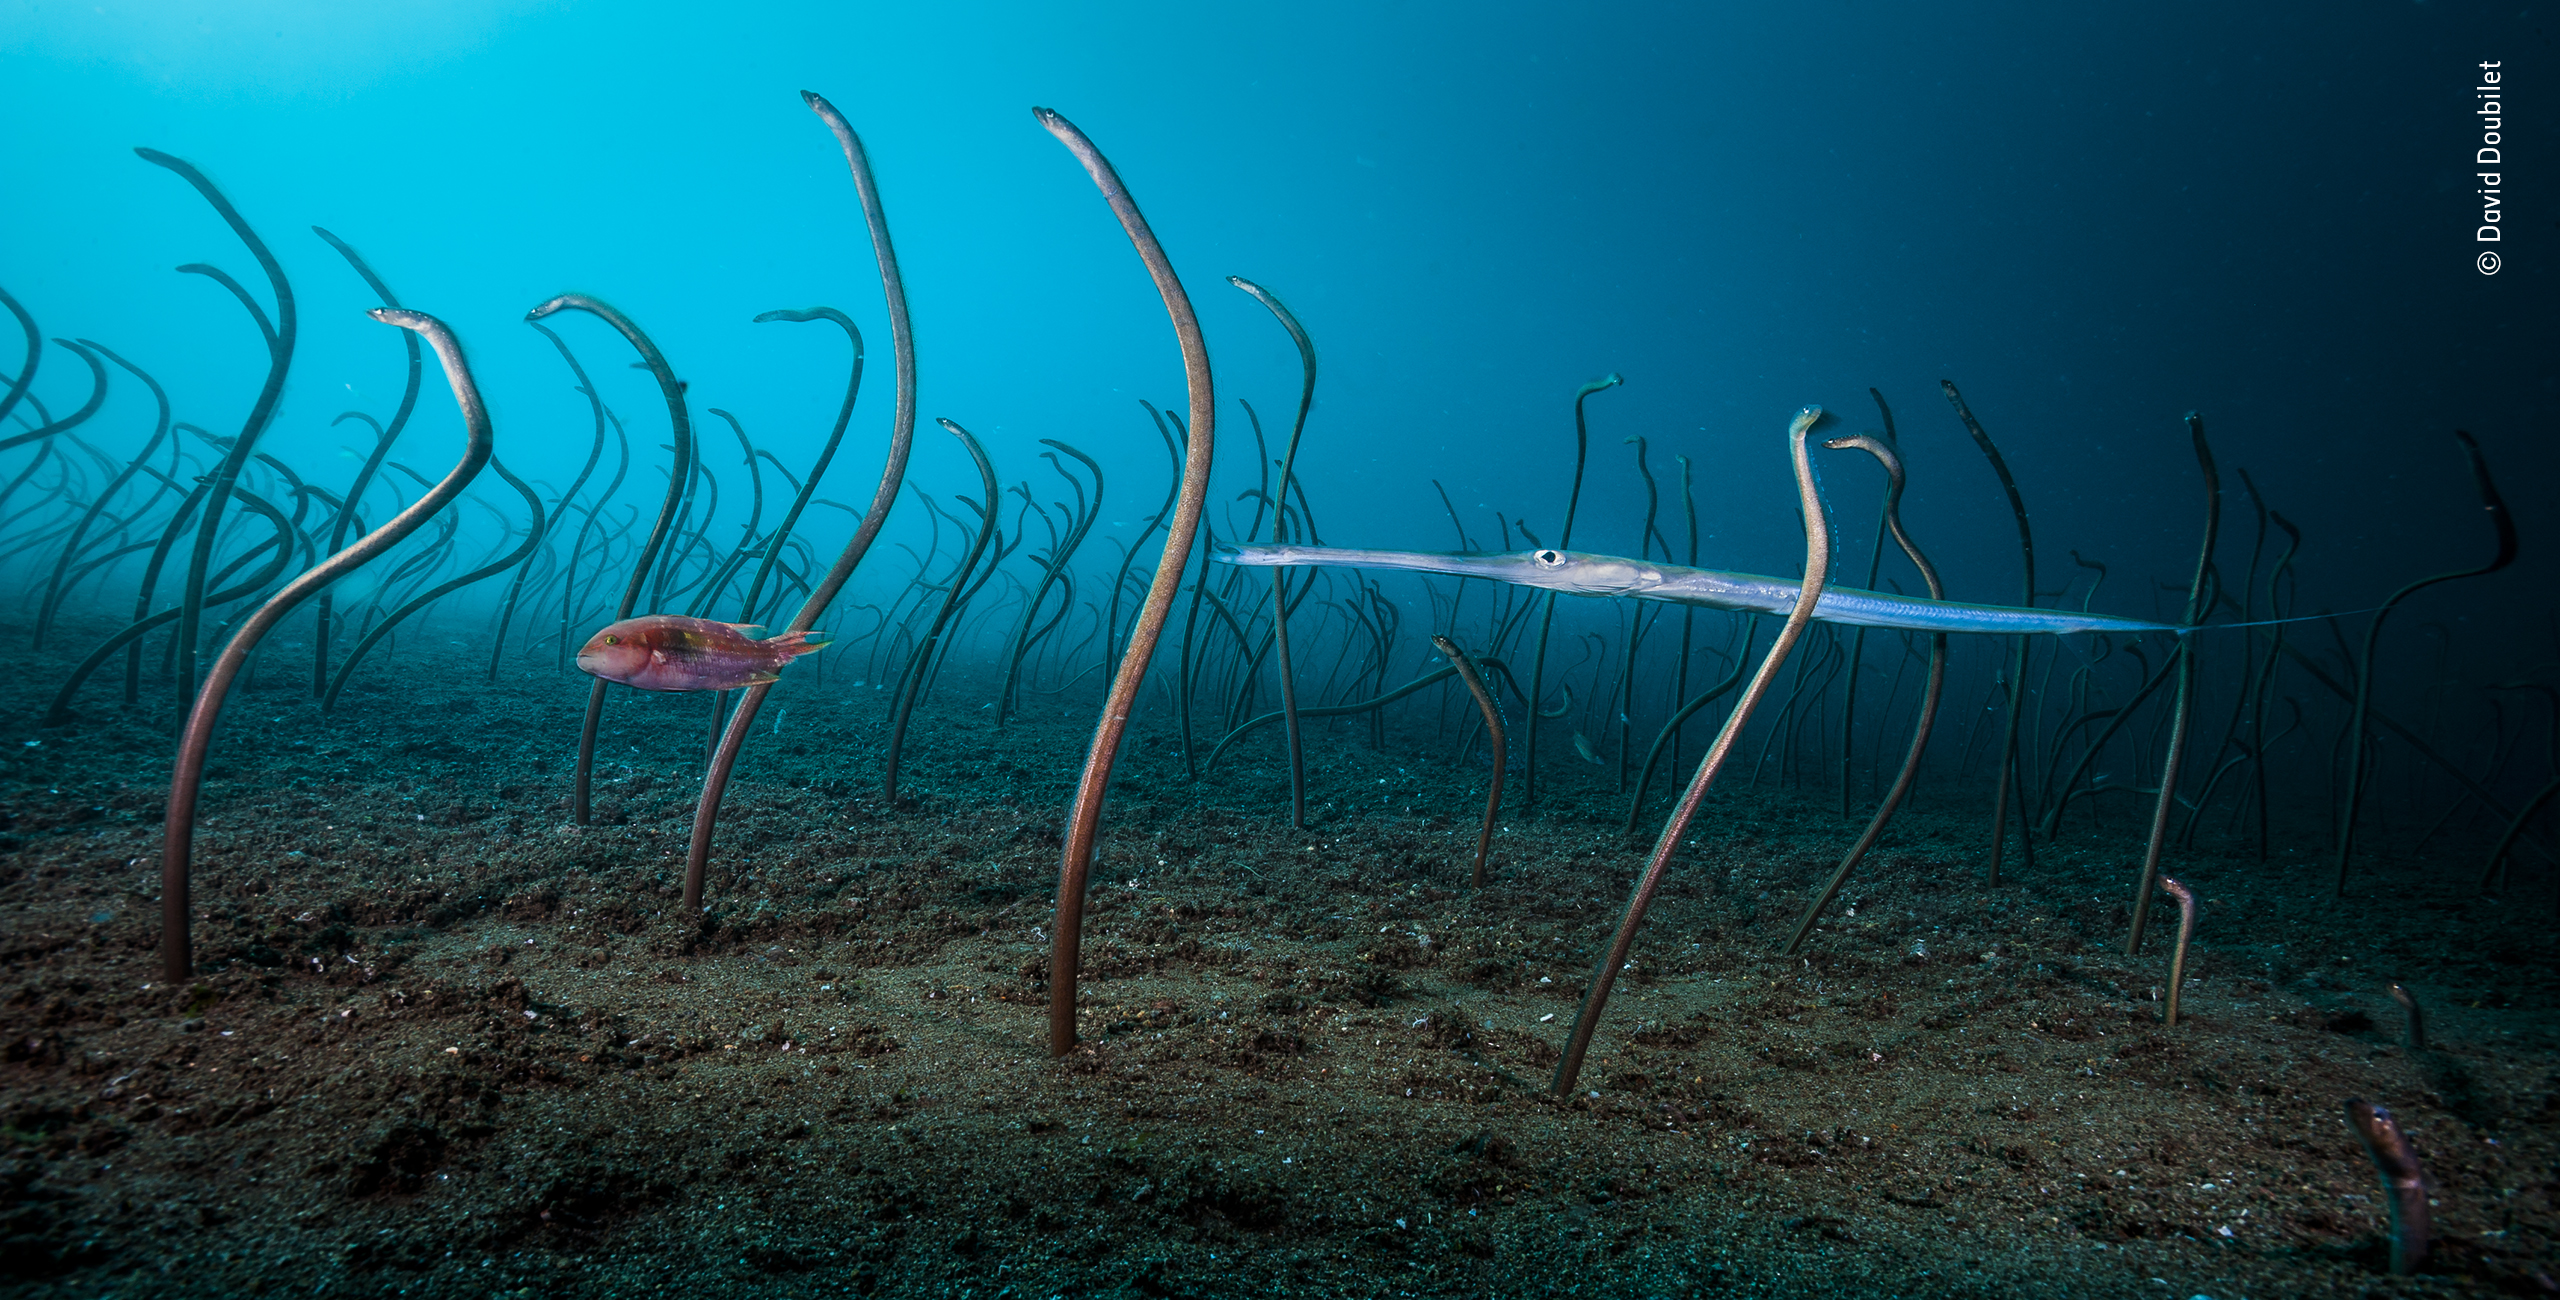 A  wrasse and coronet fish glide through a vast colony of garden eels off Dumaguete, Philippines. The extremely shy and elusive  garden eels disappear the moment they detect your presence. This image required deploying a remote camera set up to capture th